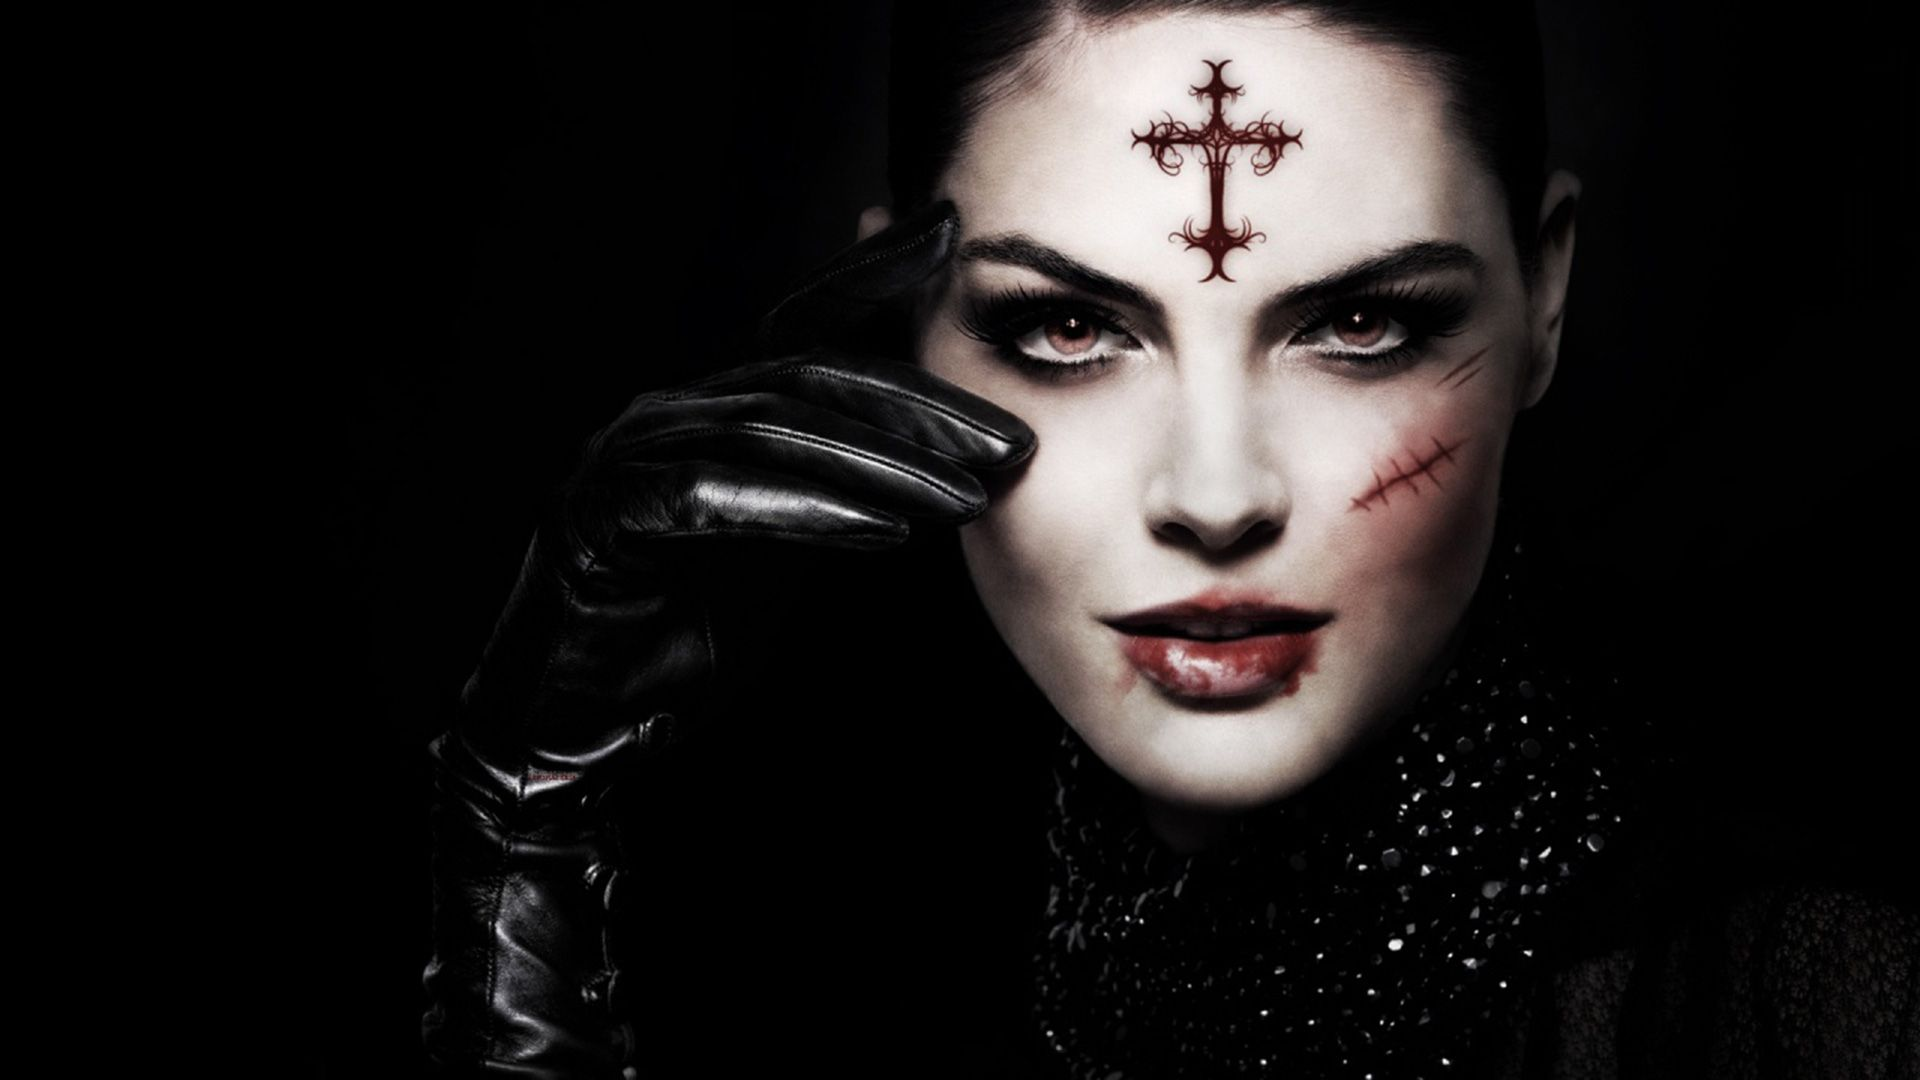 wallpapers gothic girl | gothic girl | pinterest | gothic girls